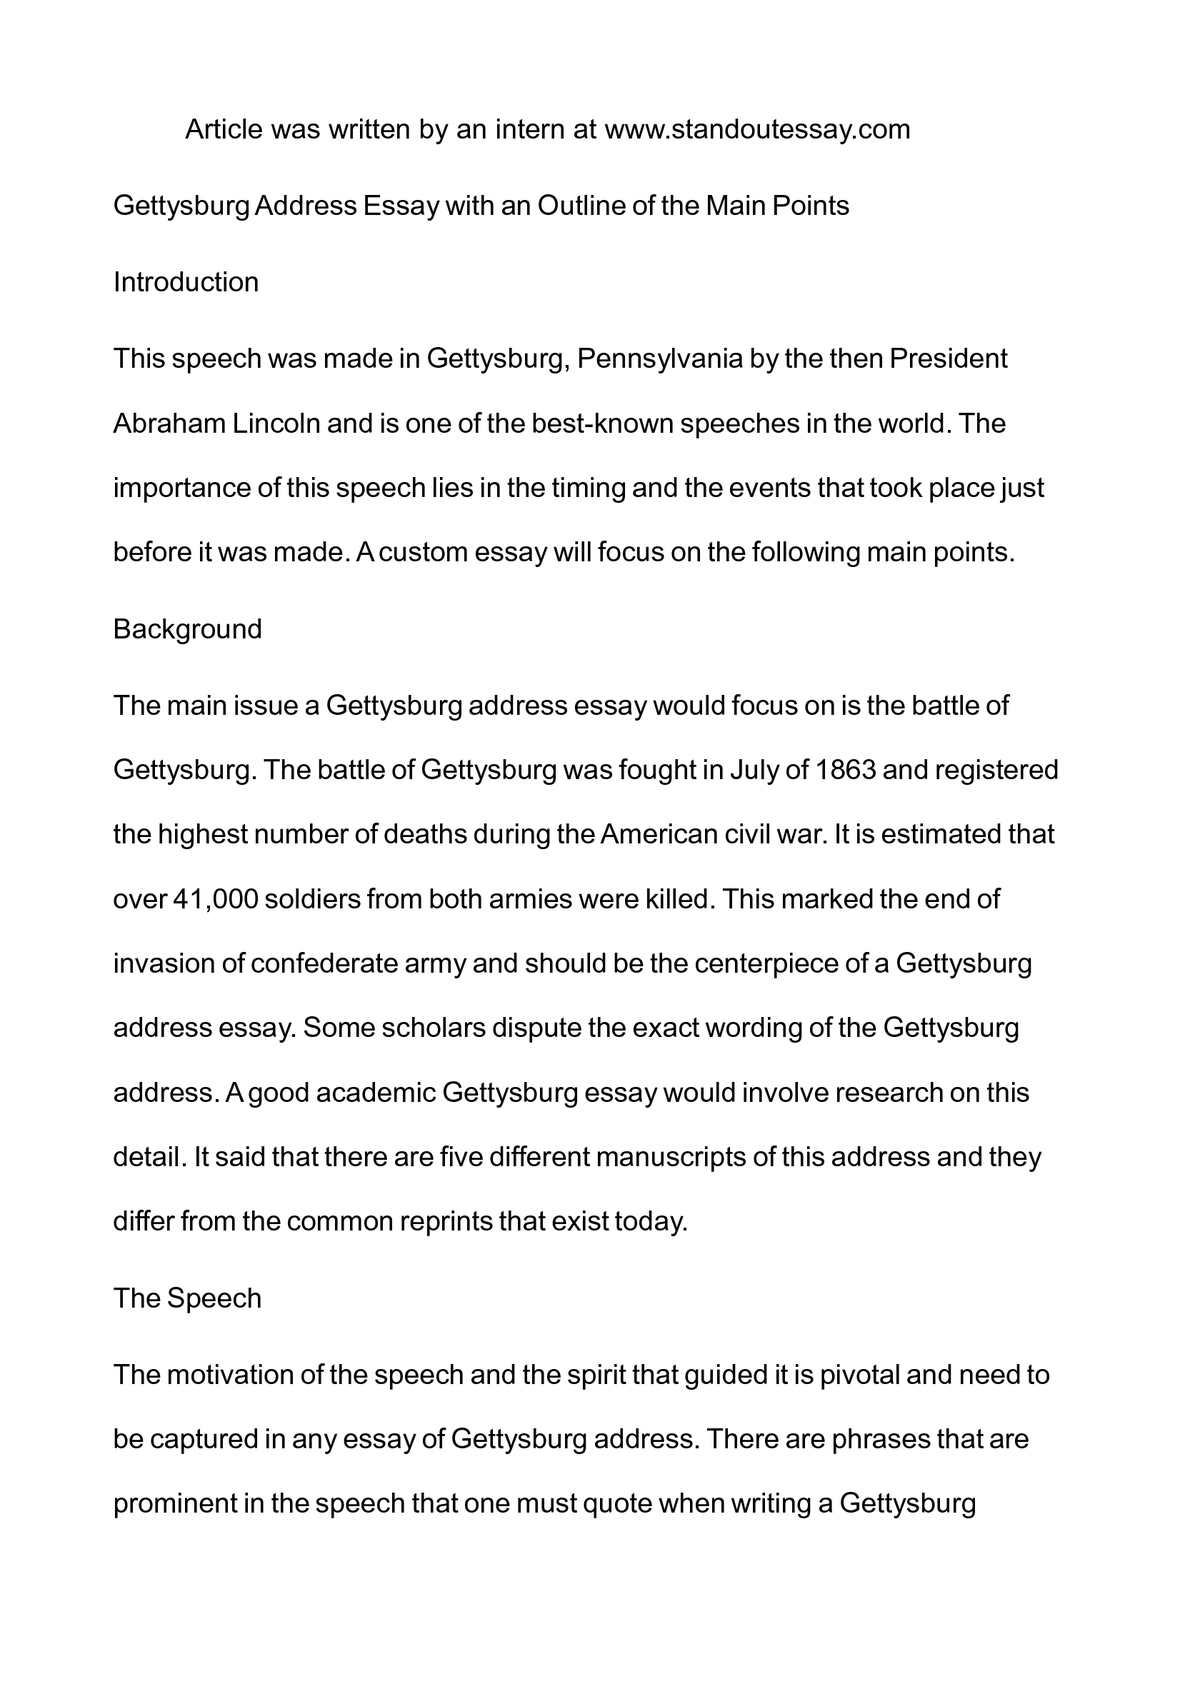 essay on gettysburg address calam atilde acirc copy o gettysburg address essay calamatilde131acirccopyo gettysburg address essay an outline of the main calamatilde131acirccopyo gettysburg